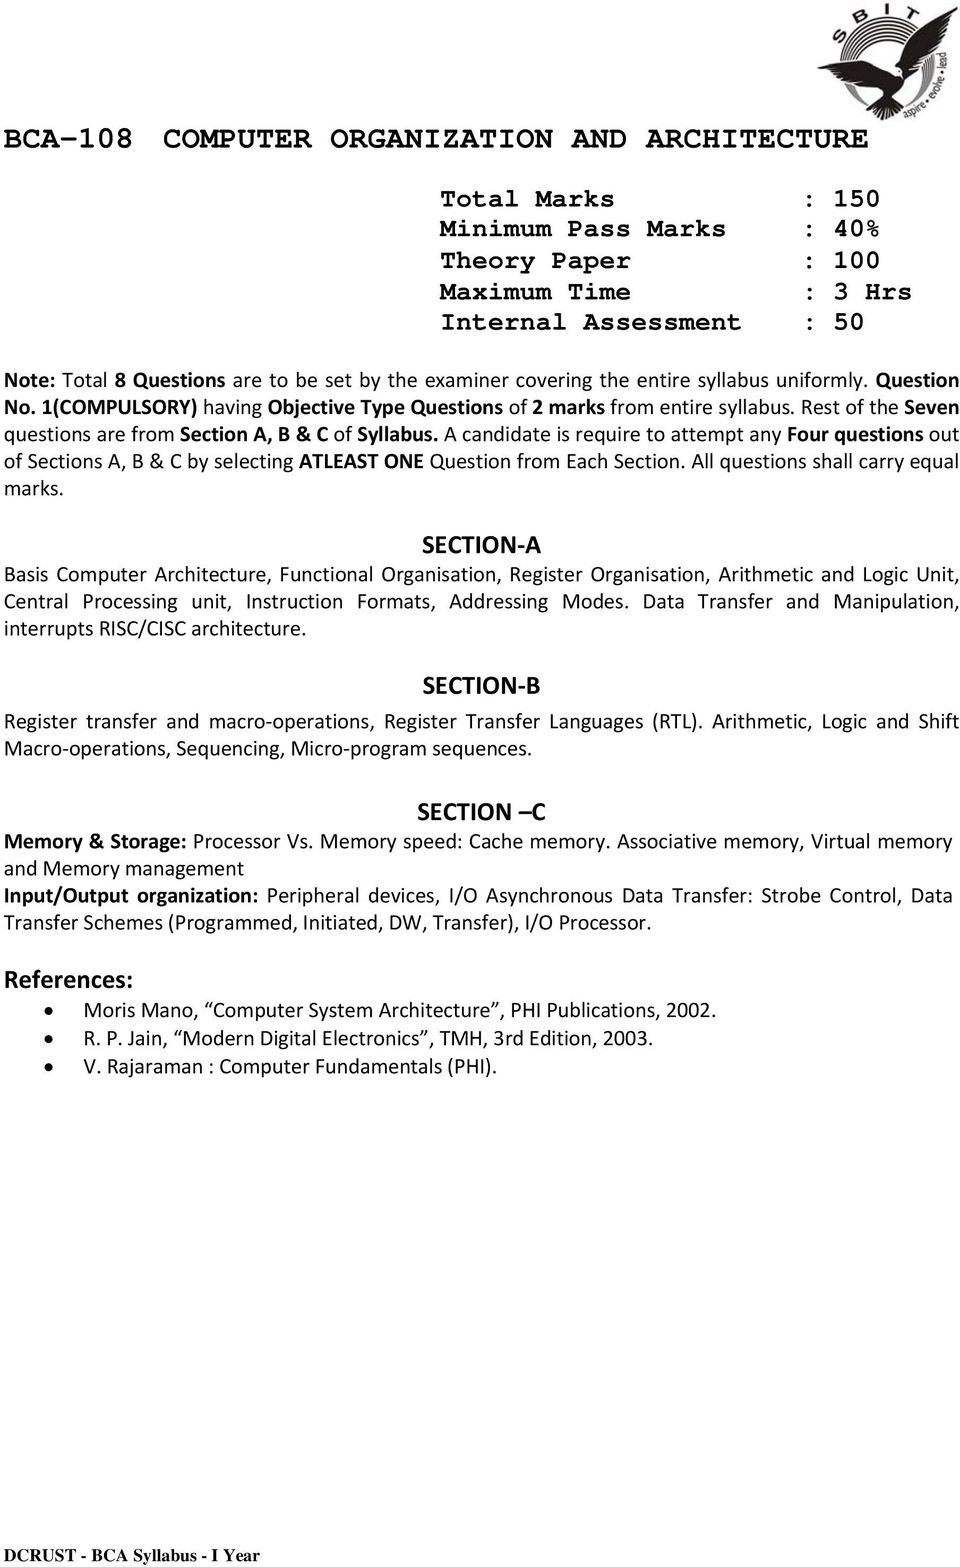 Bca Syllabus I Year Bachelor Of Computer Application Pdf Organization Systems Arithmetic Rest The Seven Questions Are From Section A B C